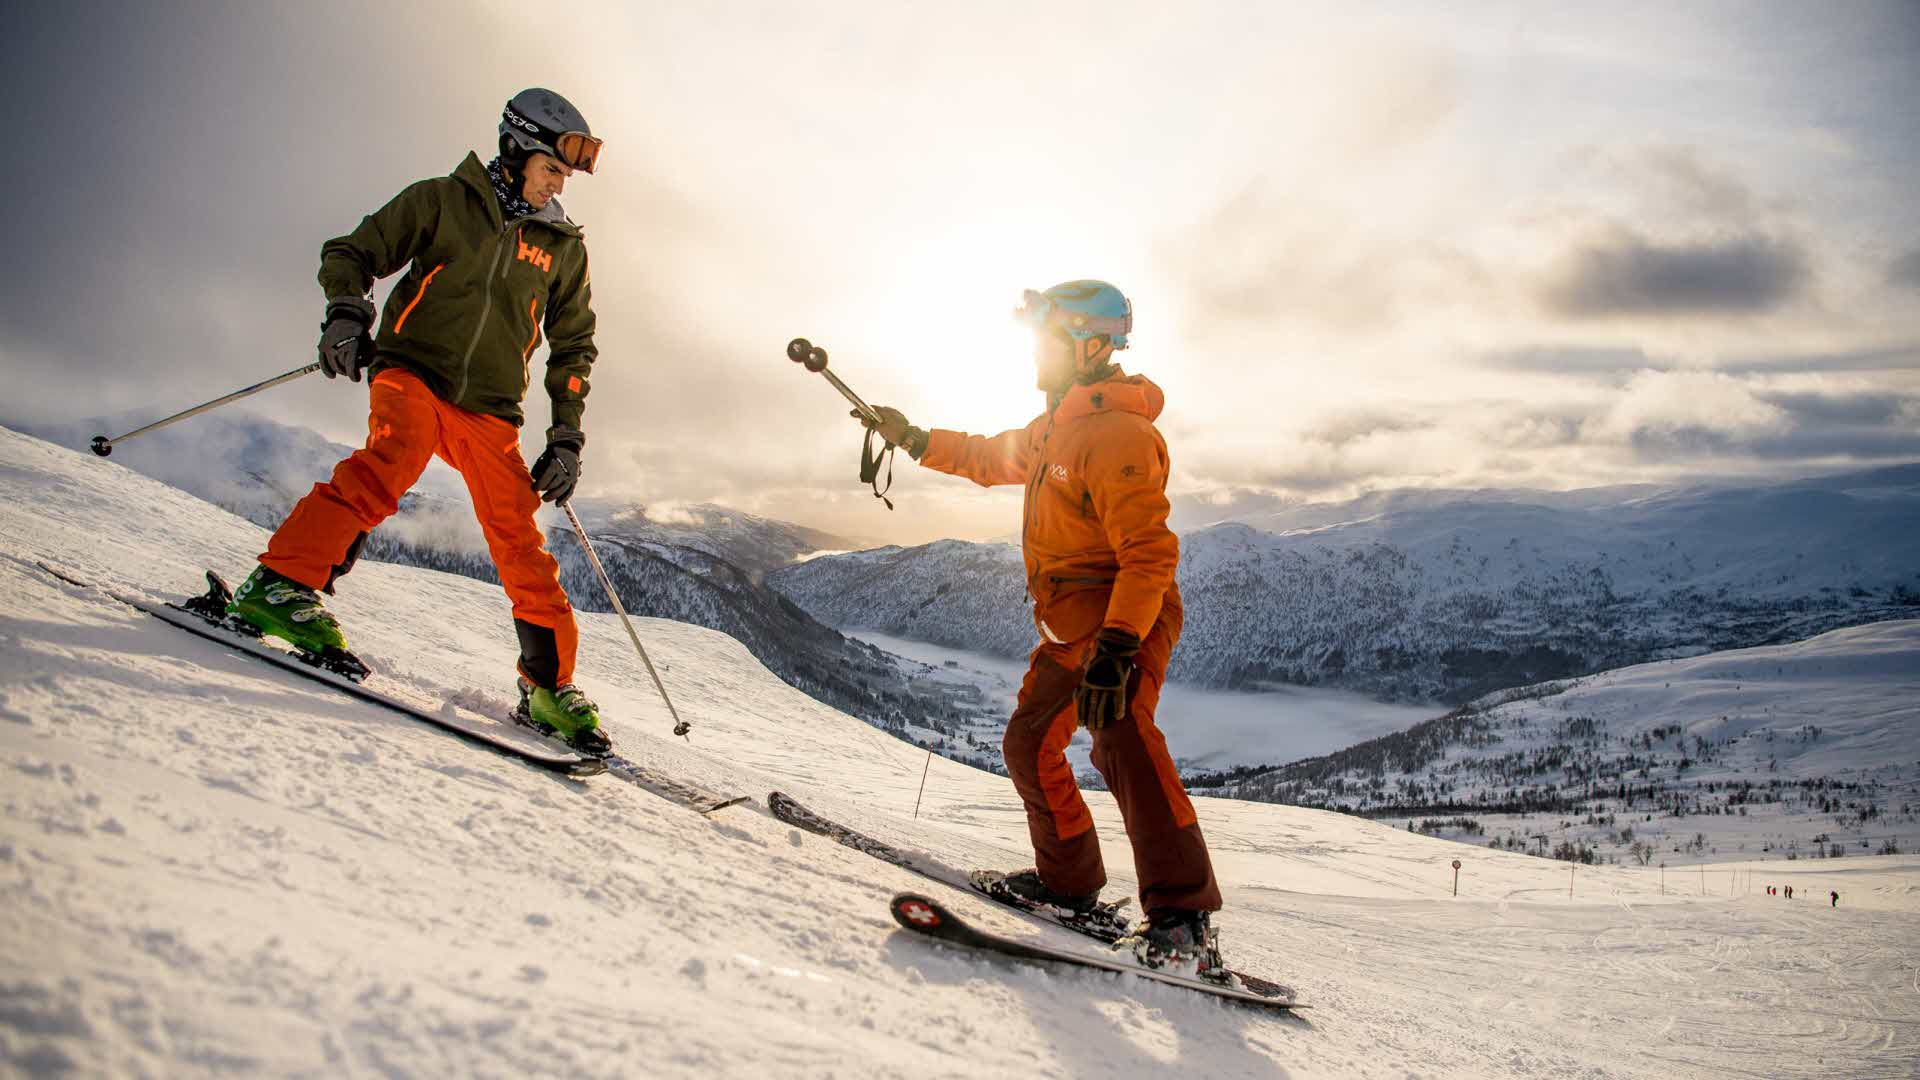 Ski instructor and pupil having a ski lesson in Myrkdalen Mountain Resort